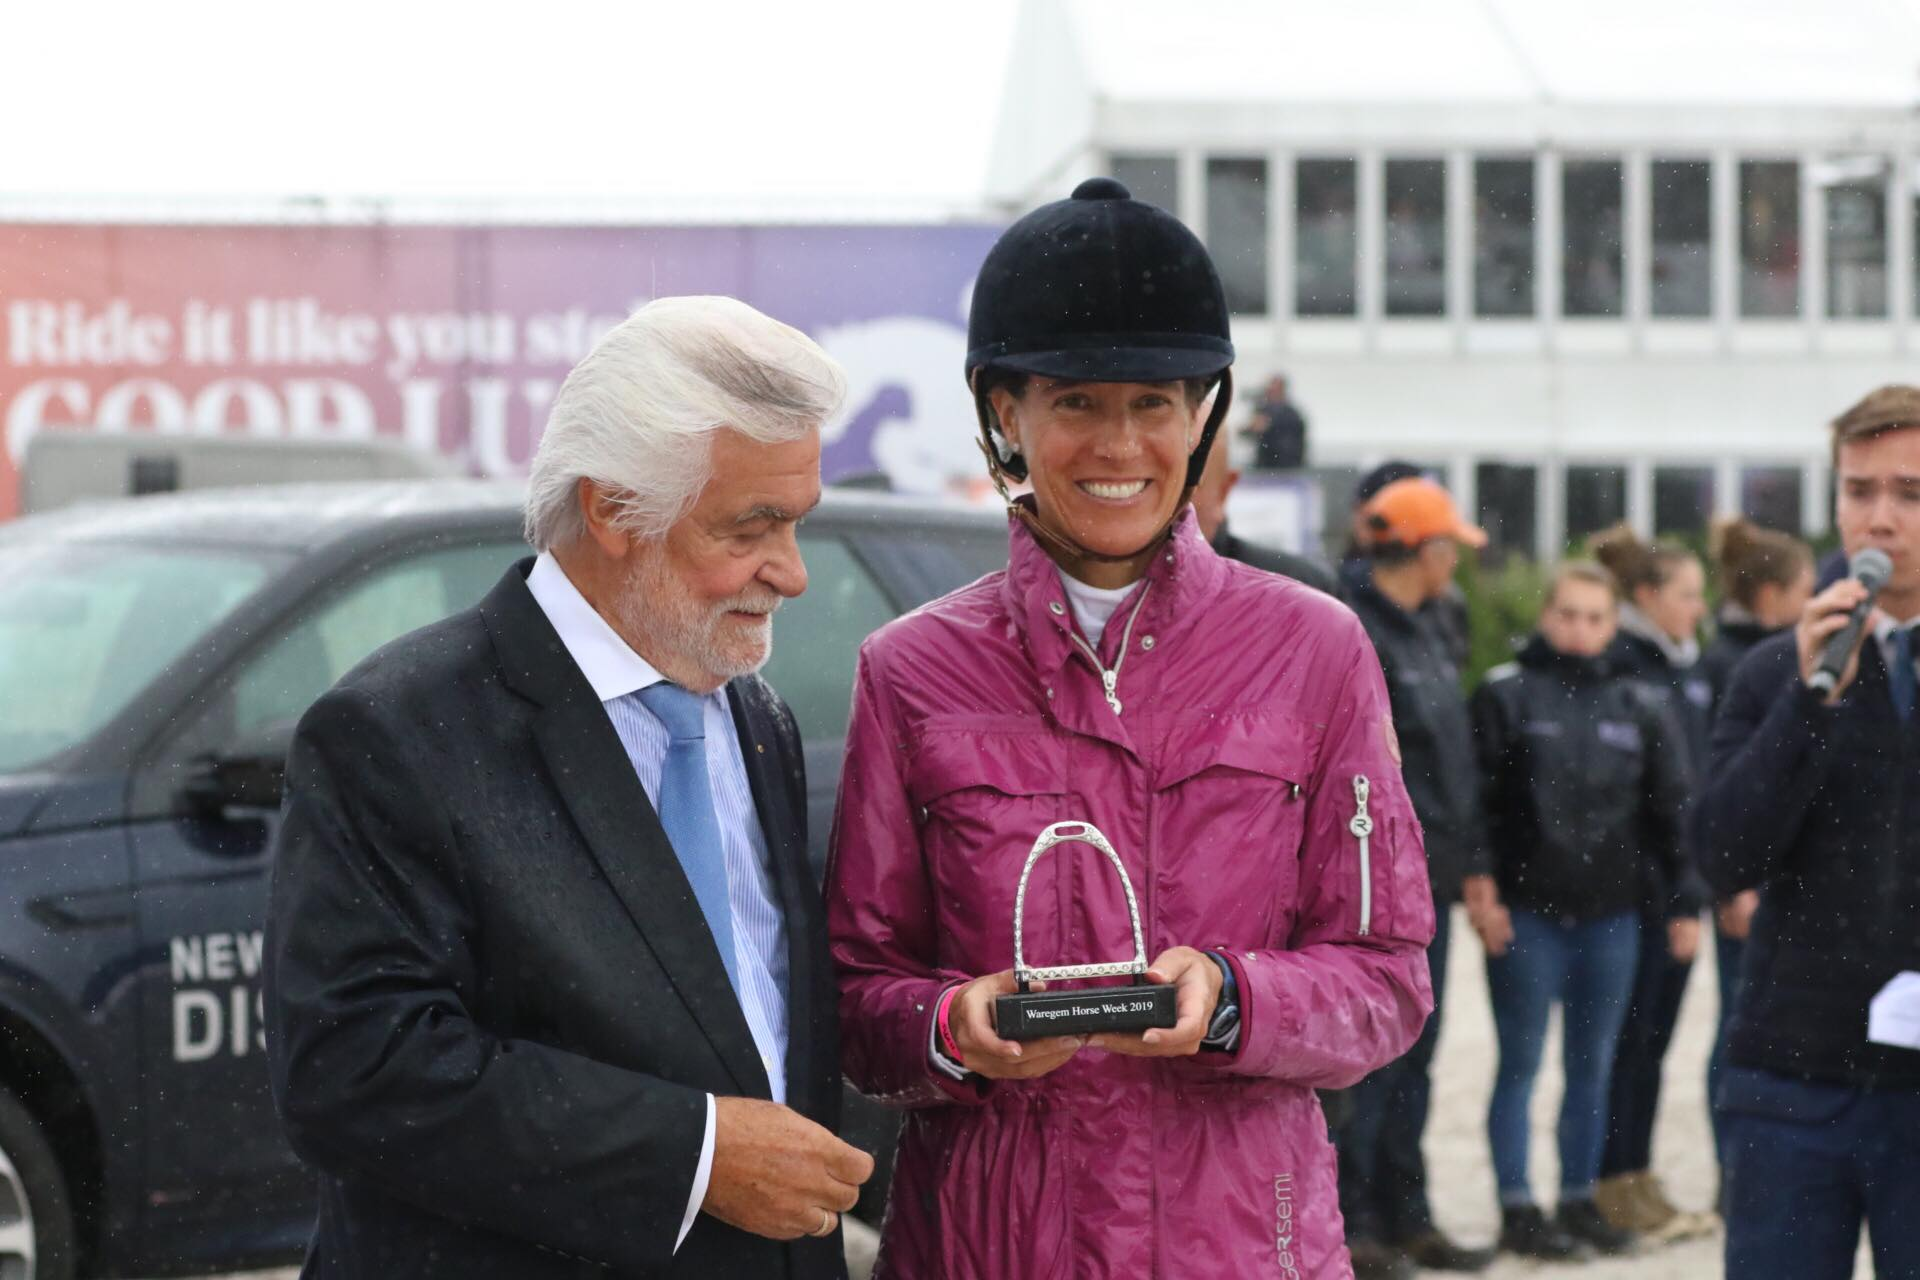 Diamond stirrup for Luciana Diniz in Waregem